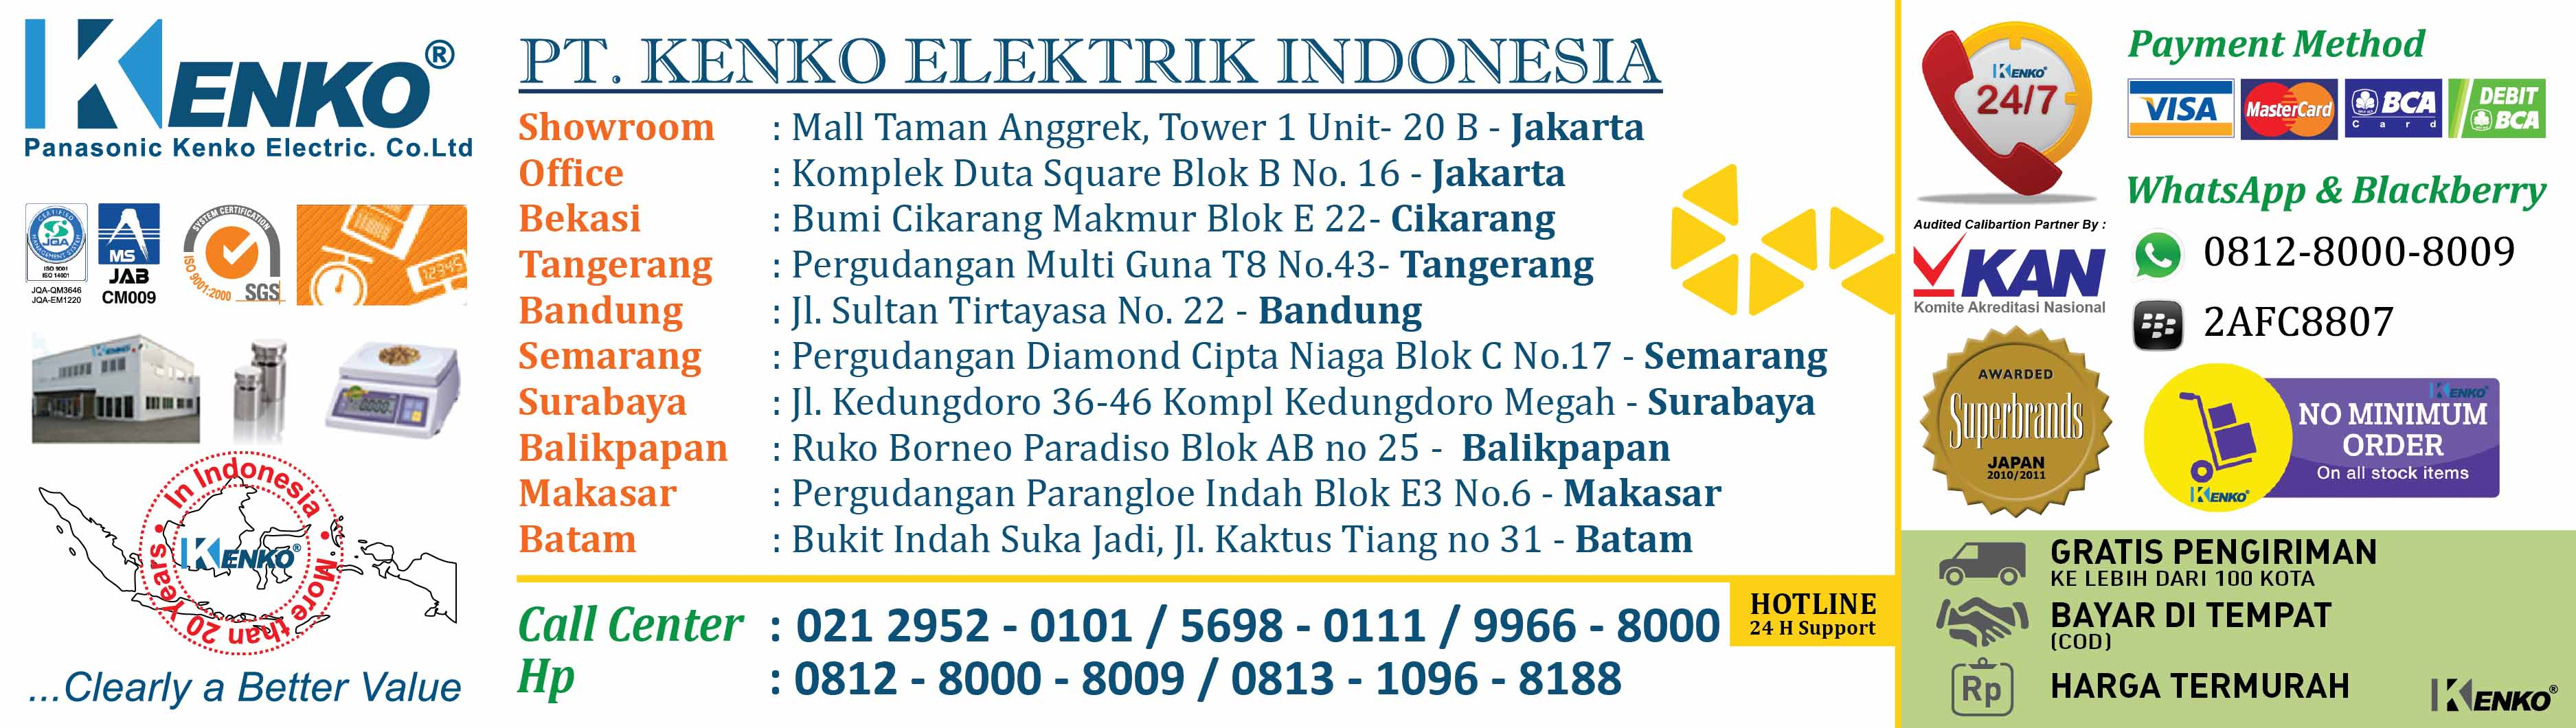 timbangan.co.id